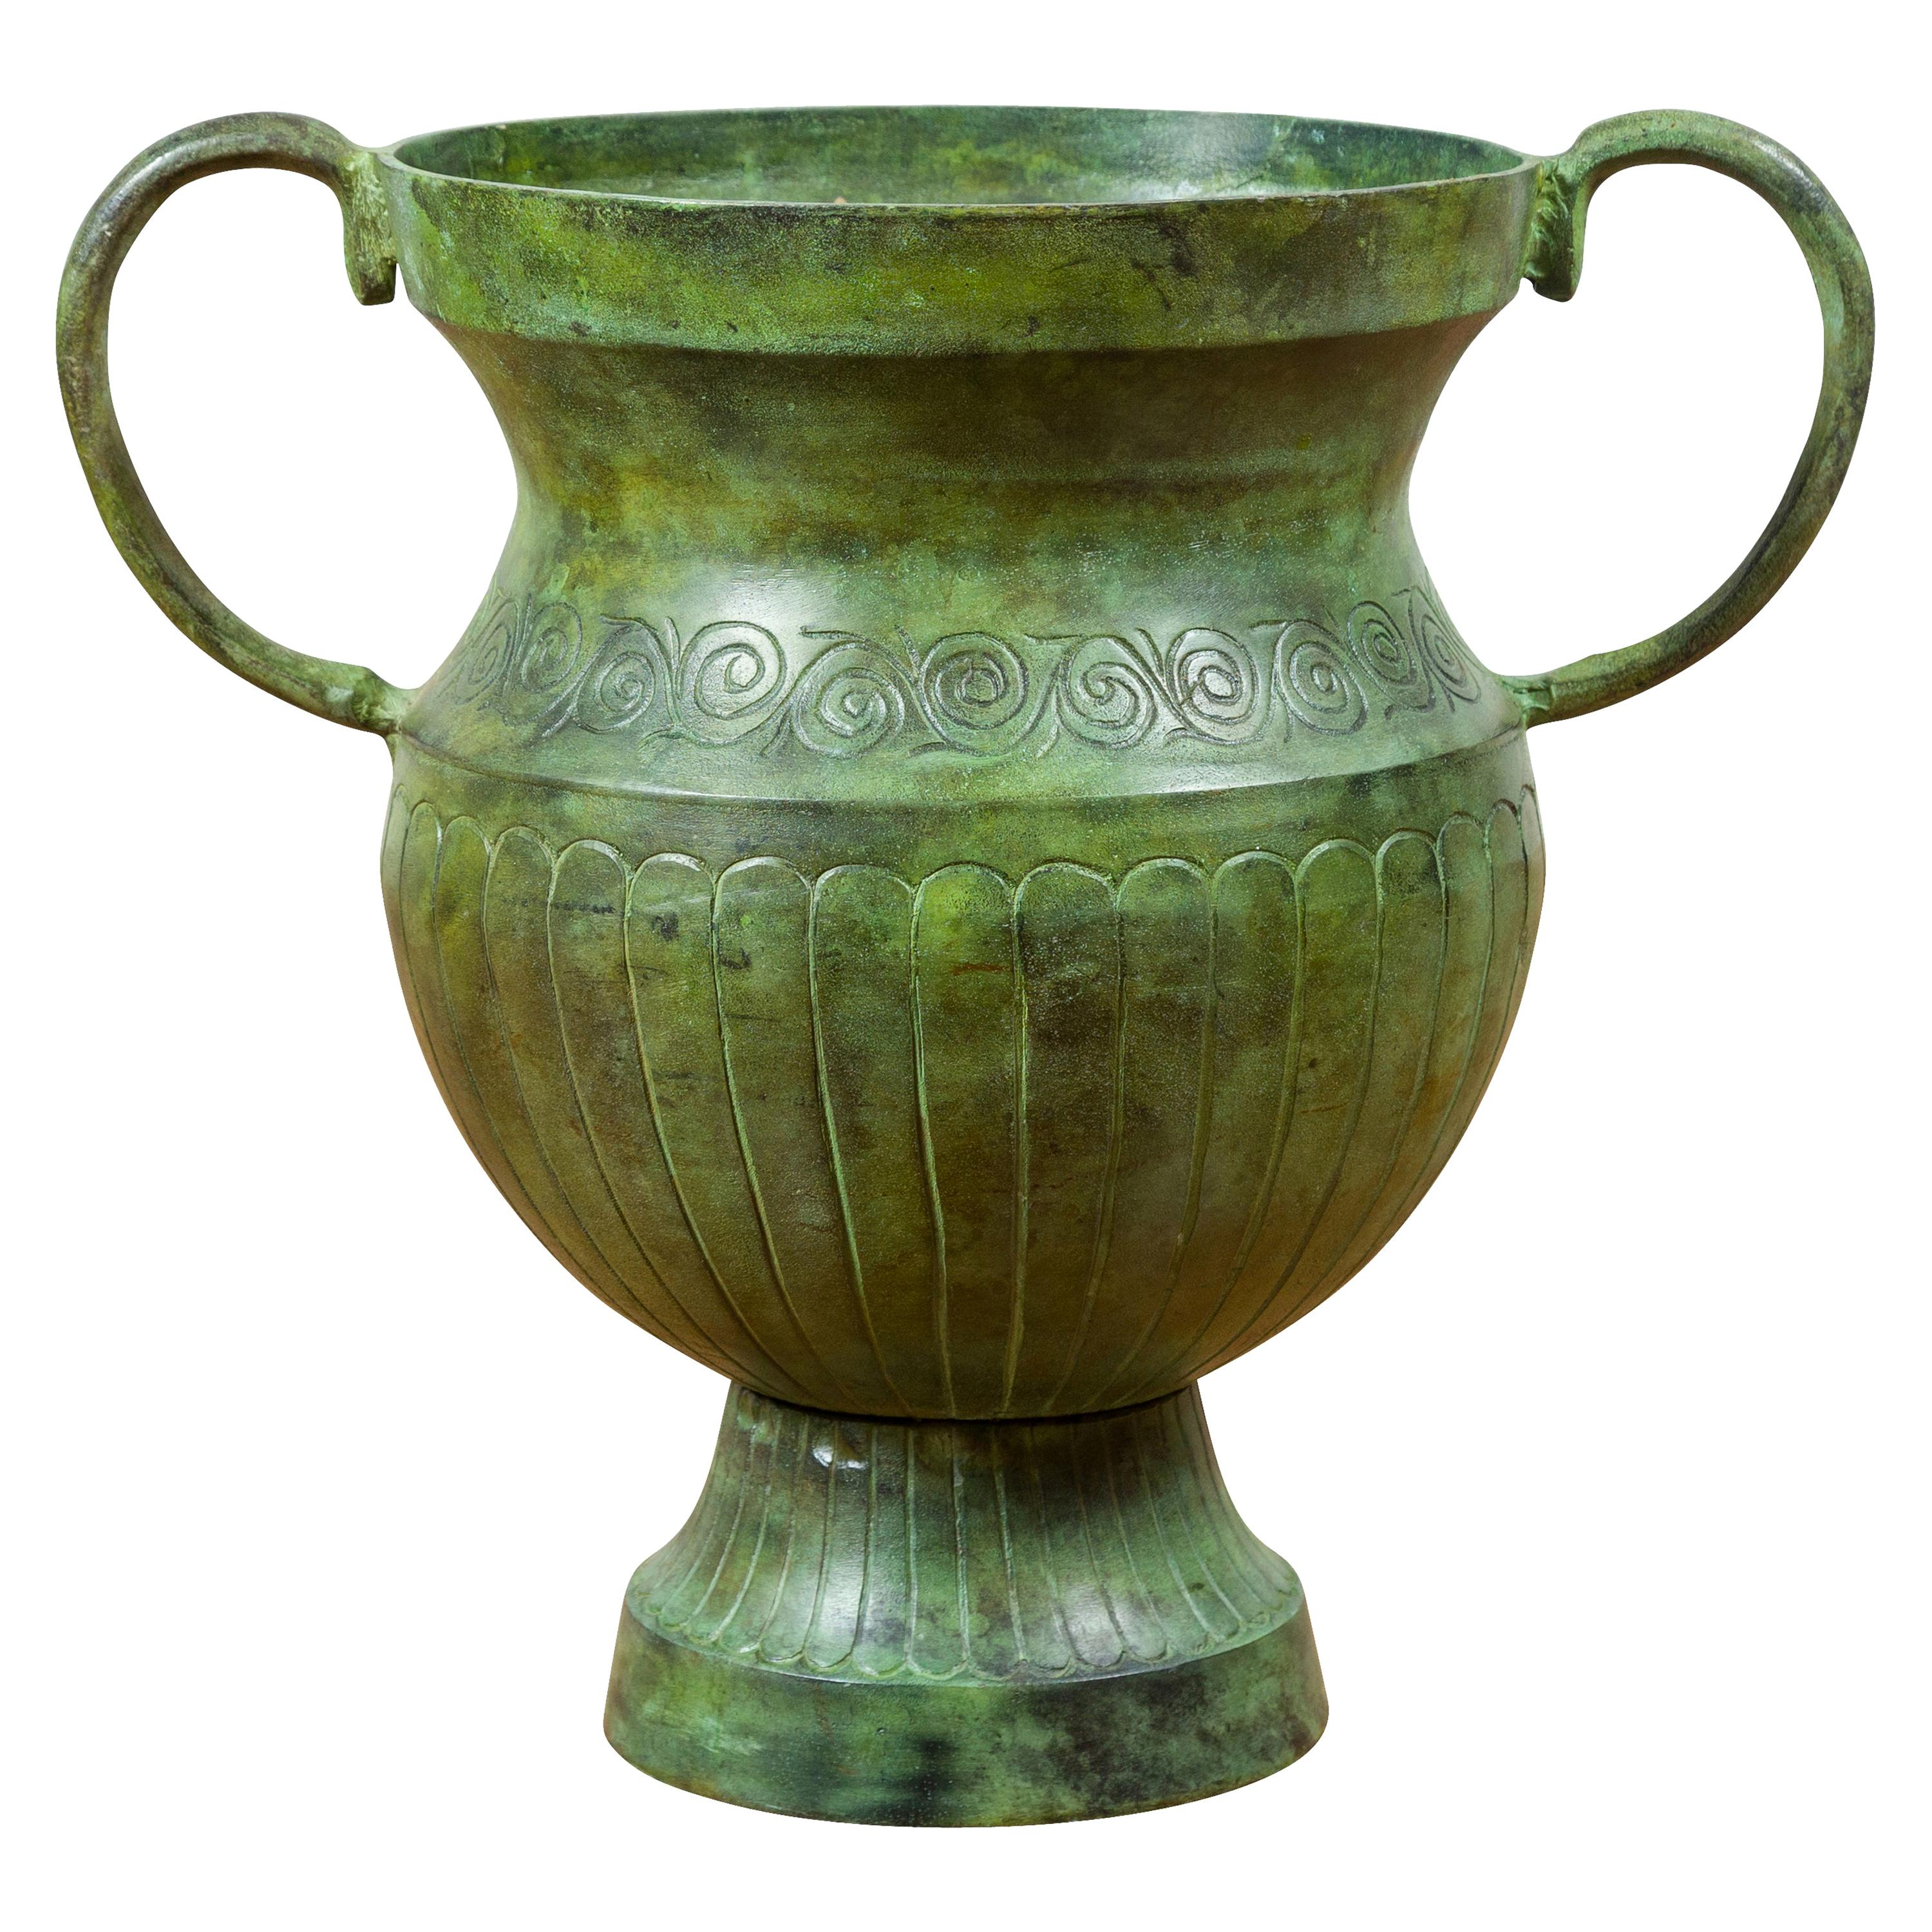 Contemporary Classical Style Urn with Verde Patina, Large Handles and Gadroons